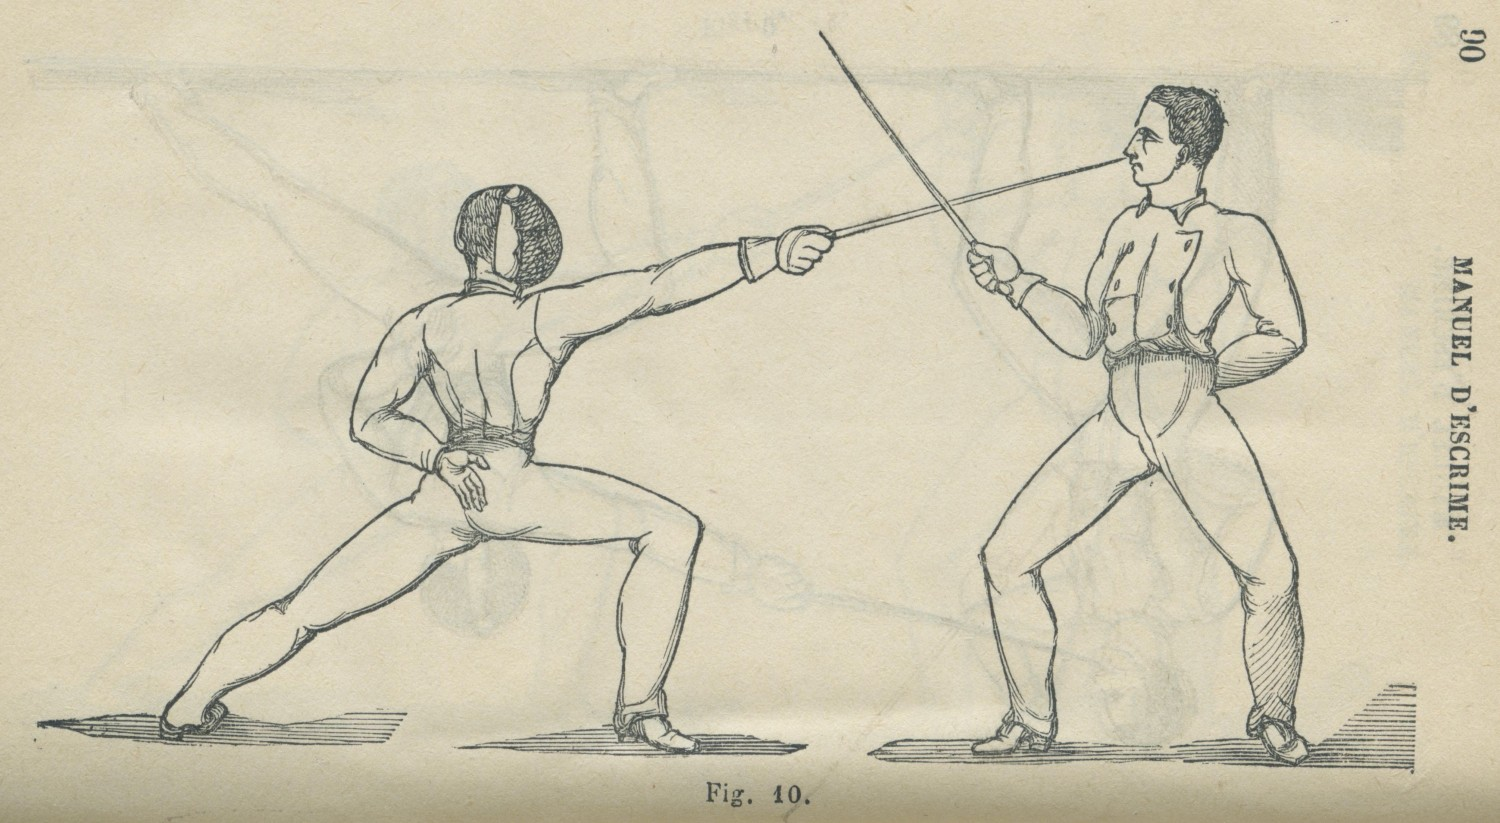 Fencing Arms & Artifacts - 2020.075 - IMG-32.jpg